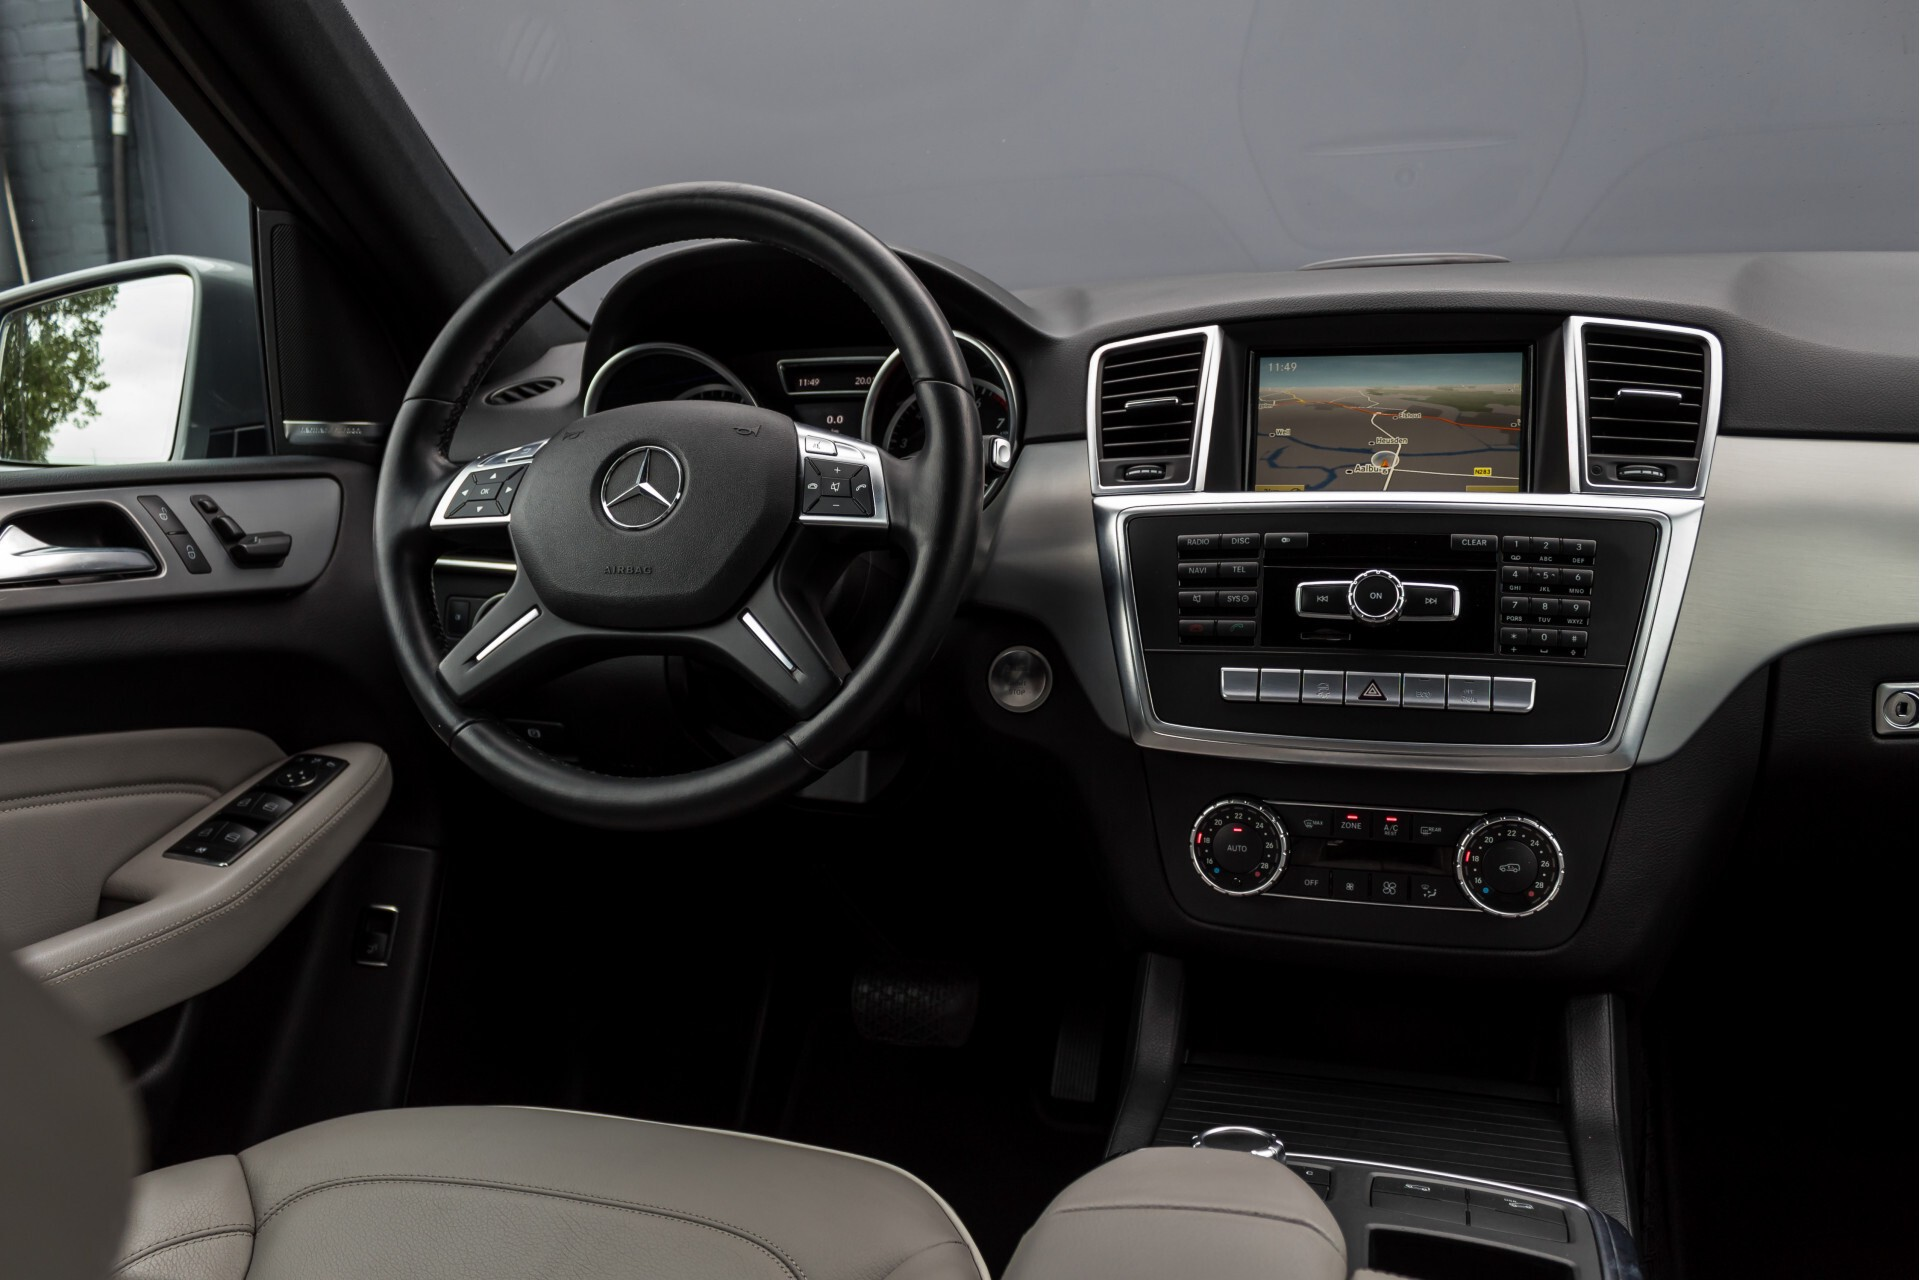 Mercedes-Benz M-Klasse 350 AMG 4-M Panorama/Keyless/Harman-Kardon/Camera/Trekhaak Aut7 Foto 7